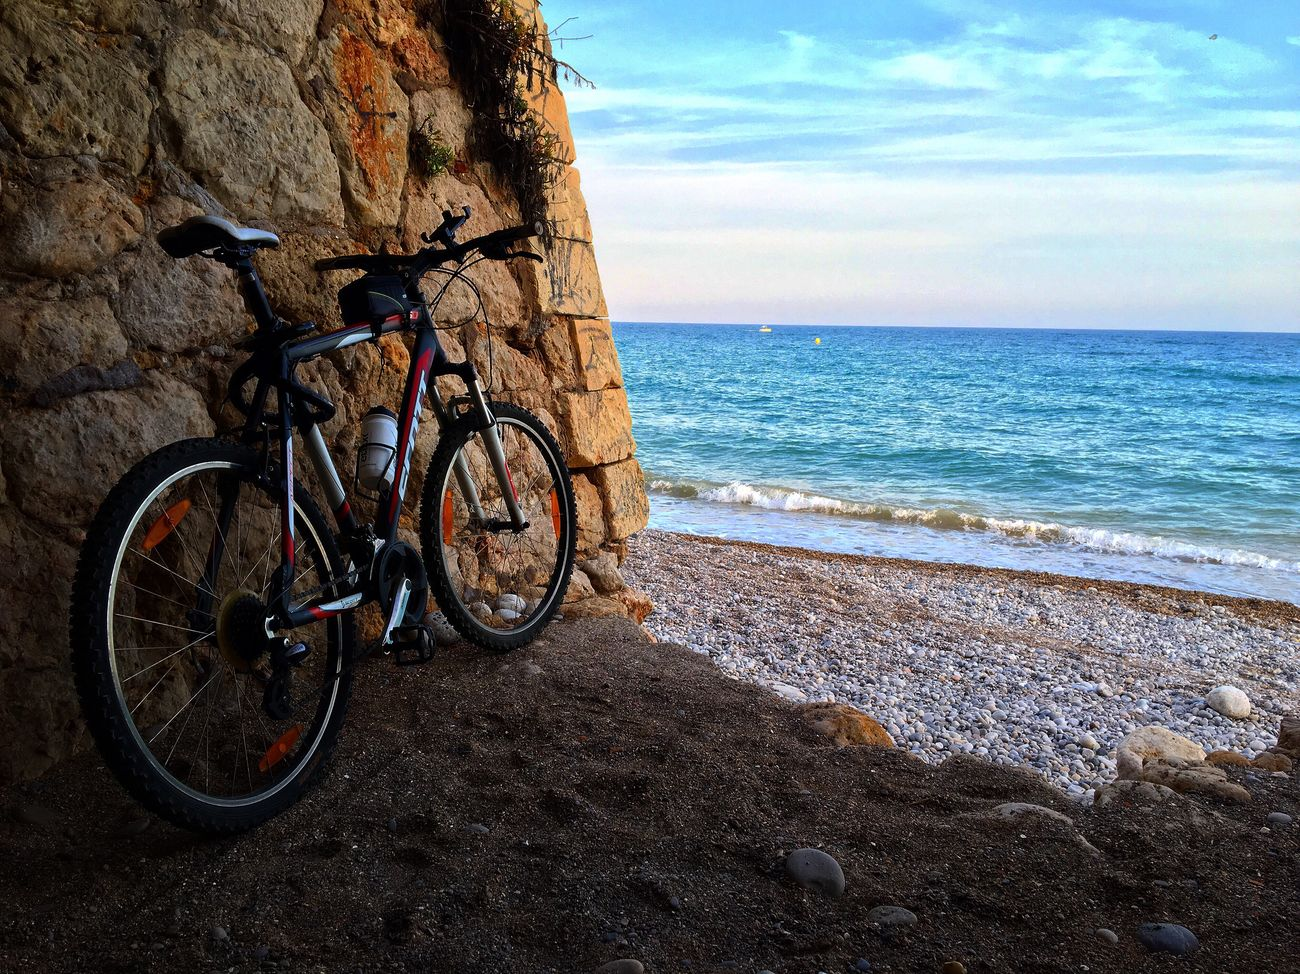 Bicicleta Sea Deporte Playa